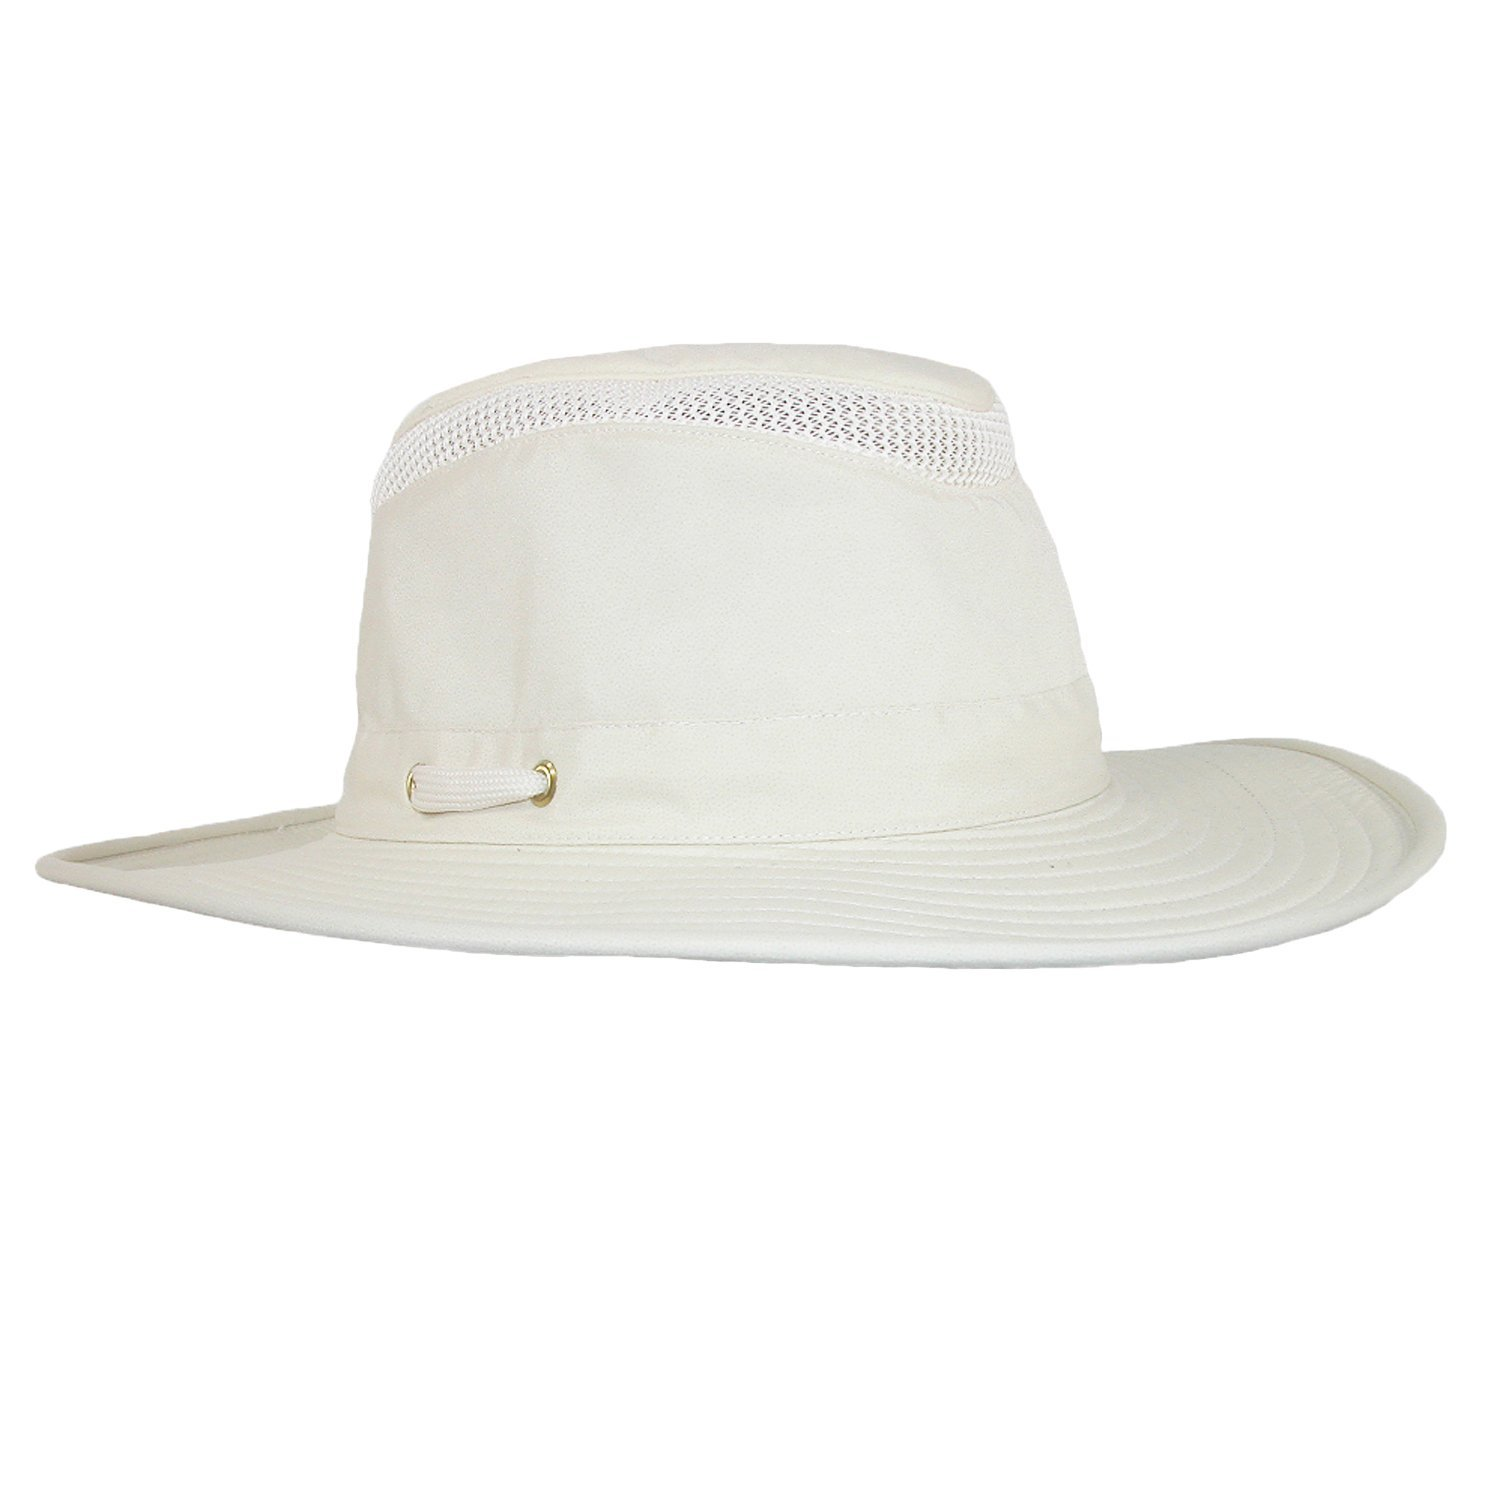 Tilley Endurables Airflow hat